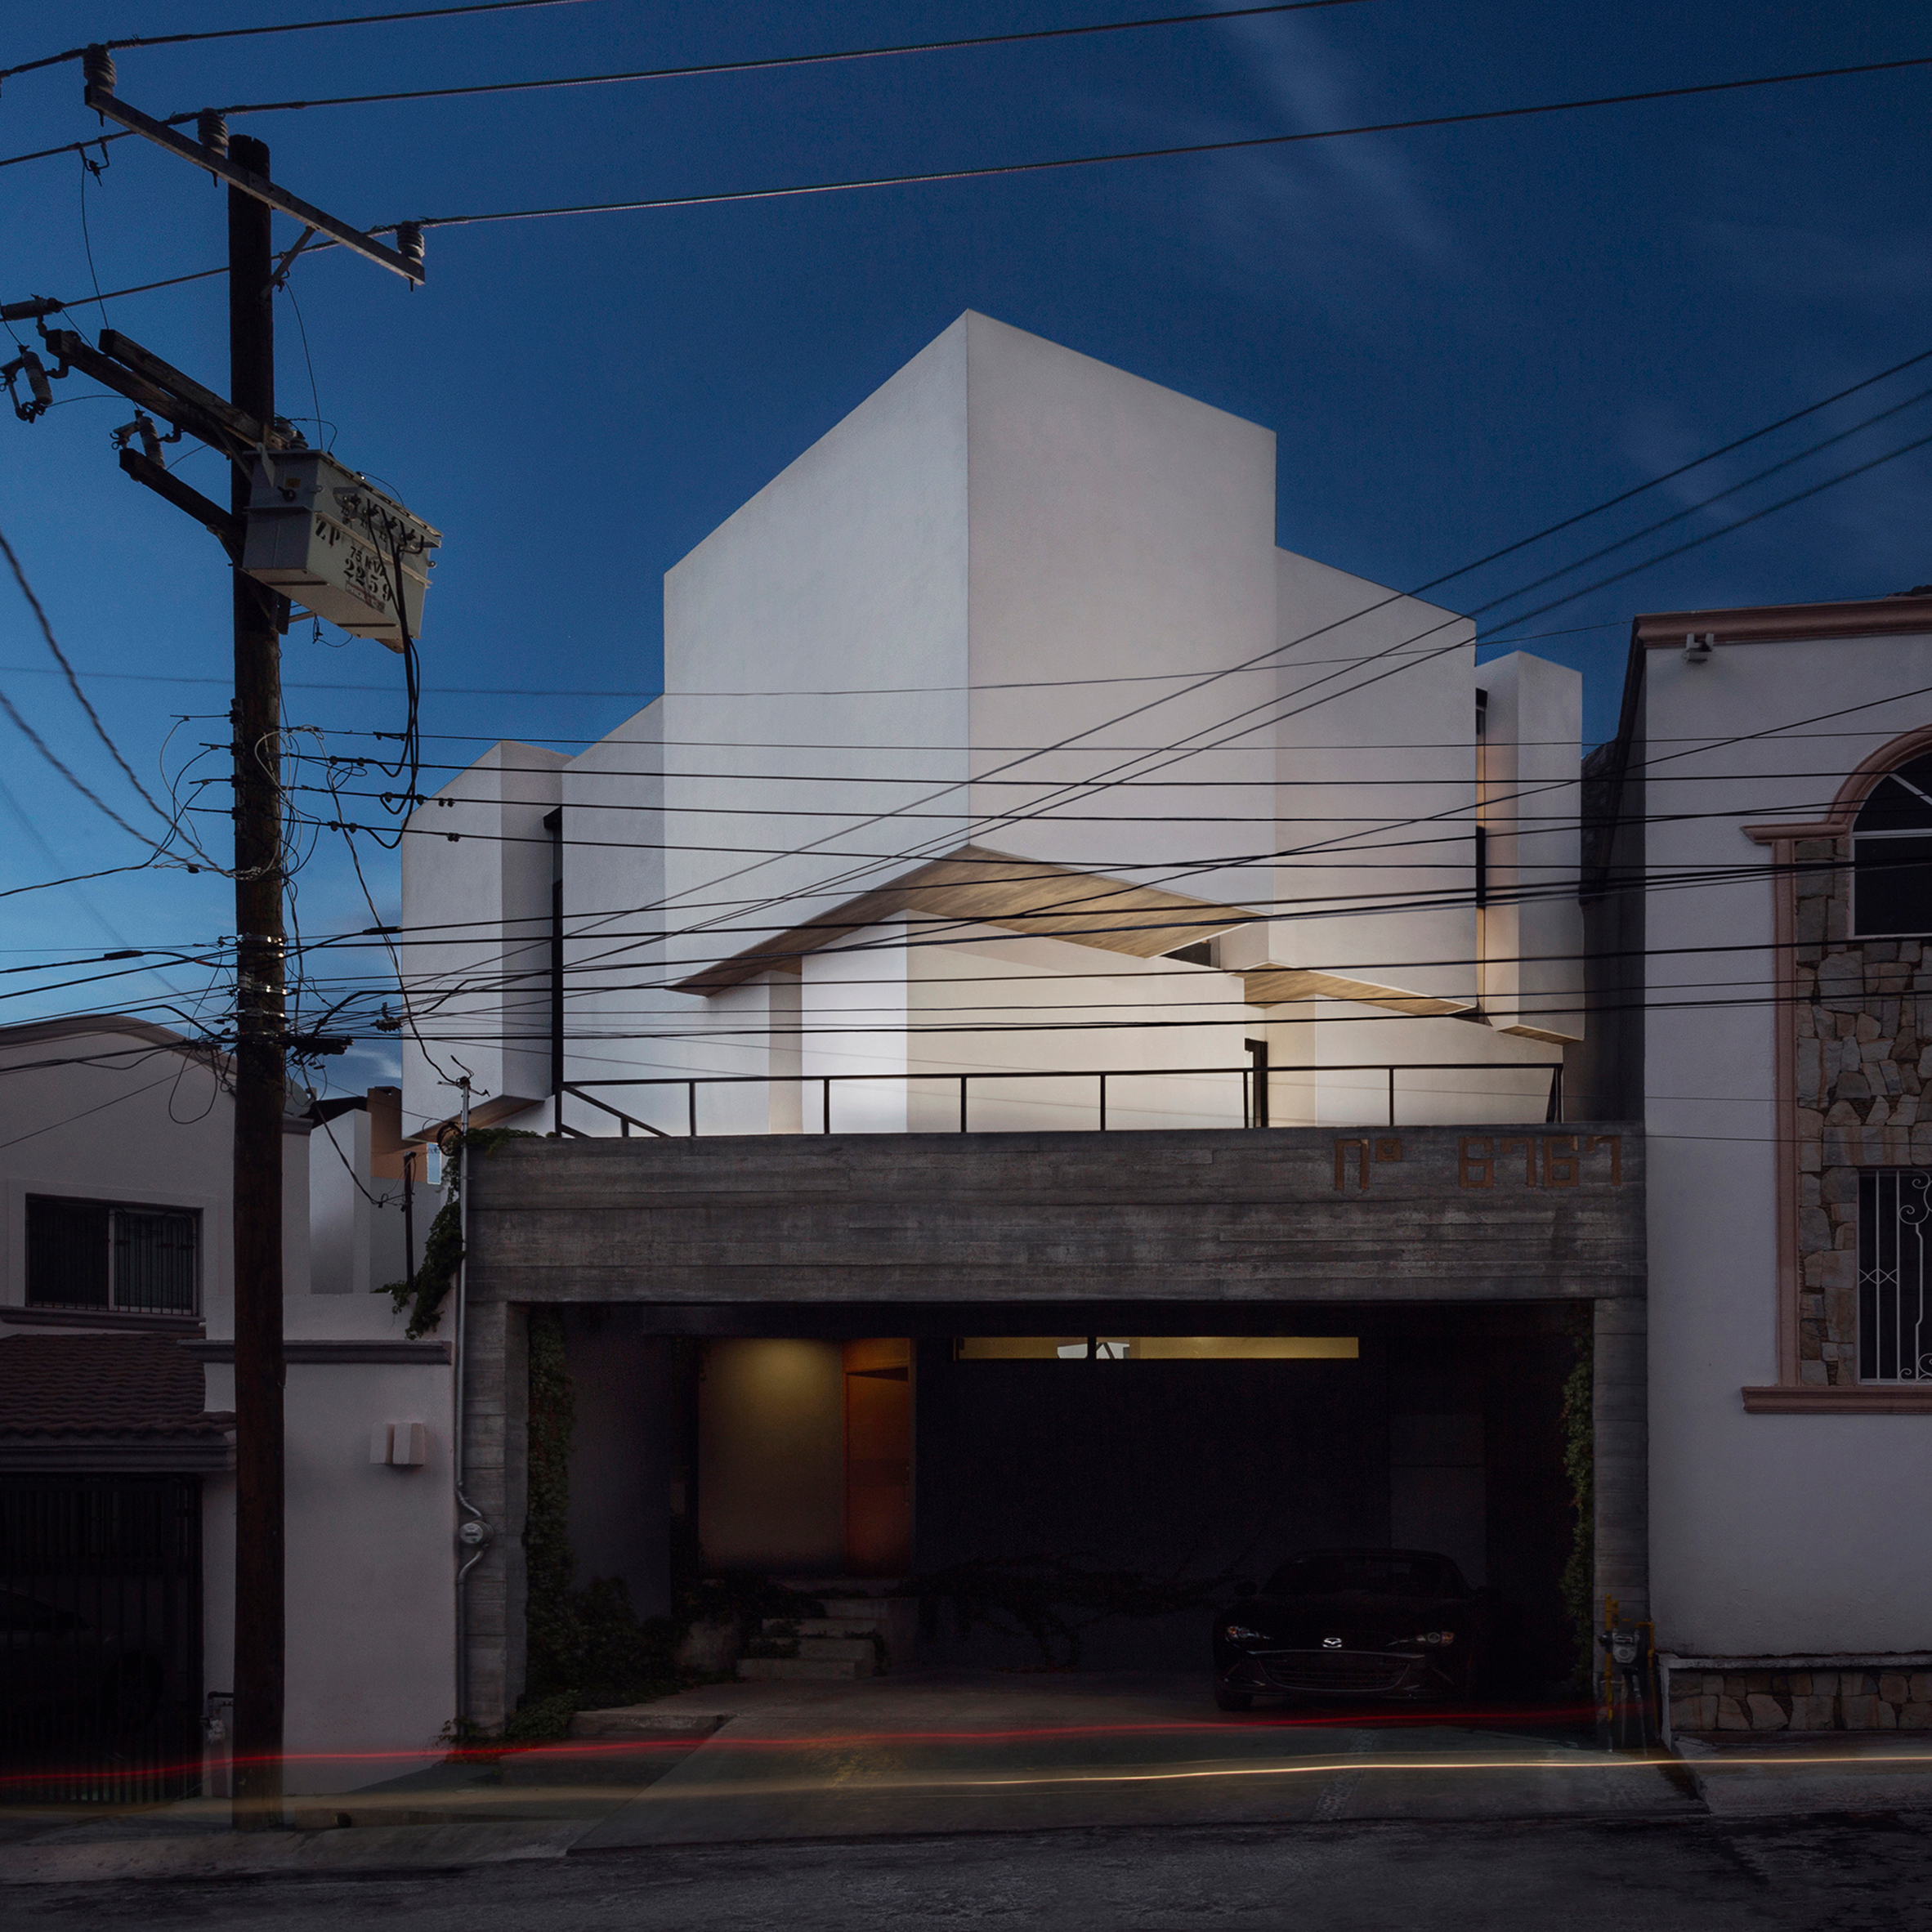 House design and architecture in mexico dezeen arquidromo stacks white cubes to form mexican house on angled plot malvernweather Choice Image